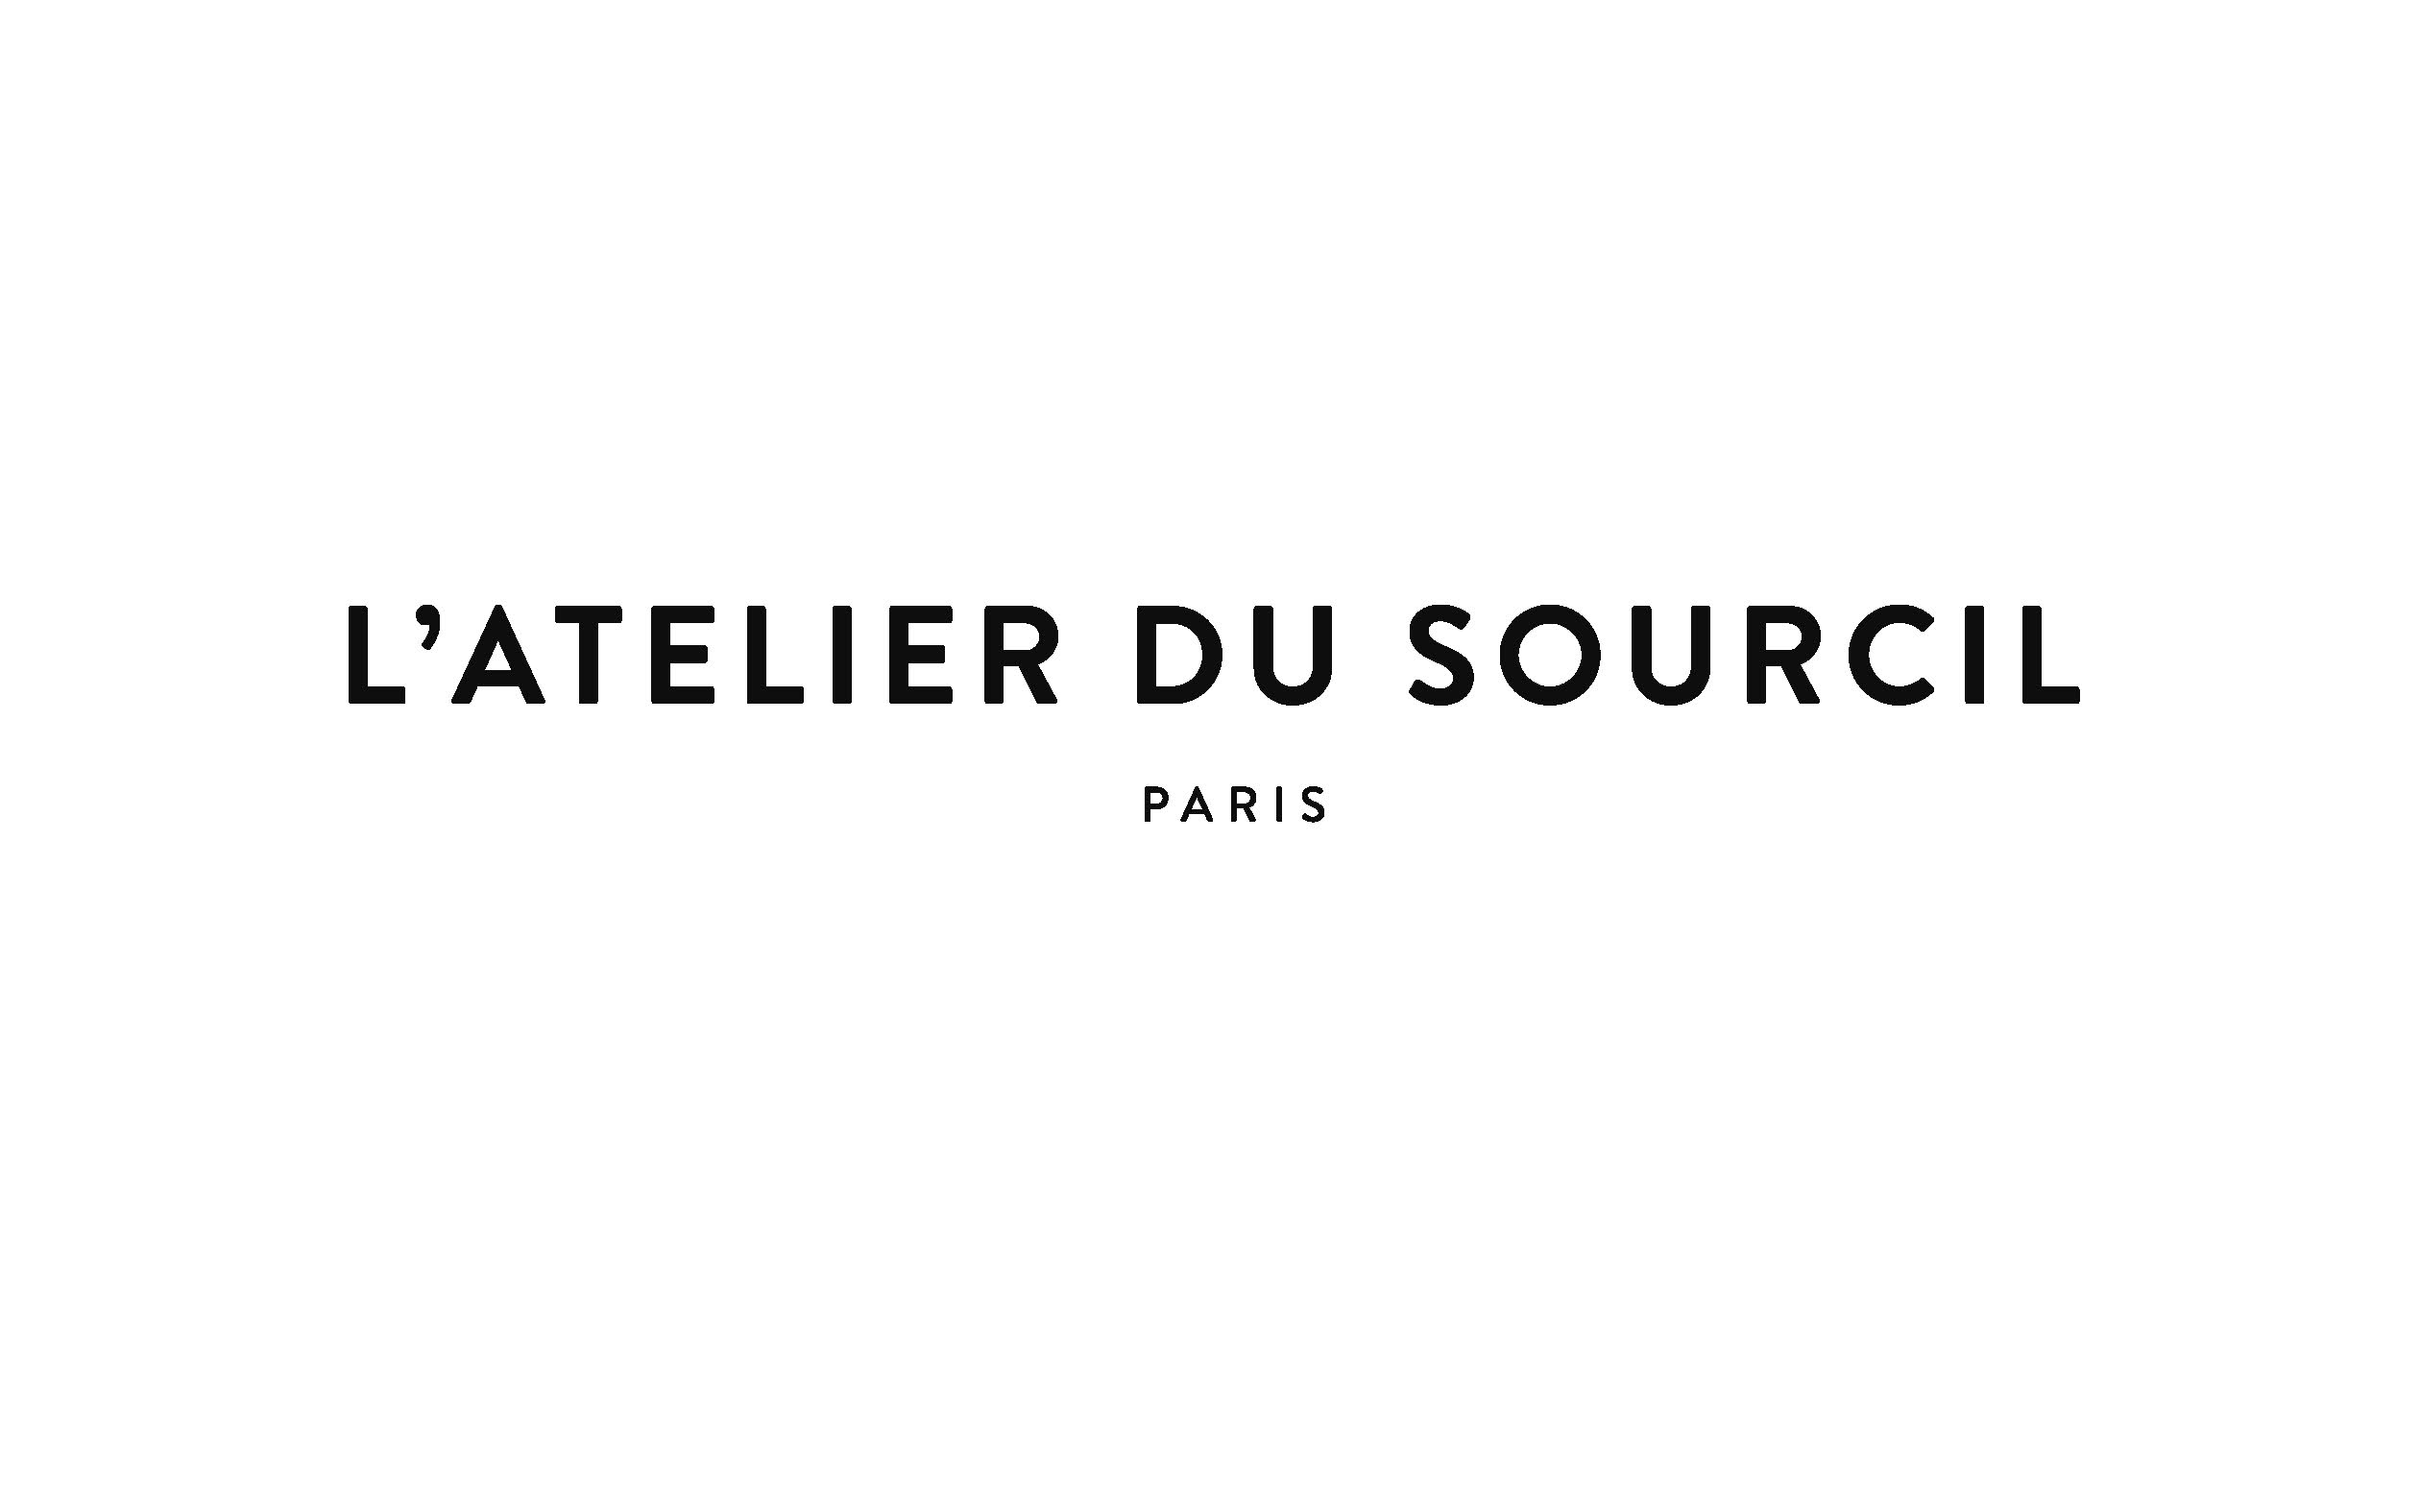 Latelier Du Sourcil Paris 9 Instituts De Beauté à Paris